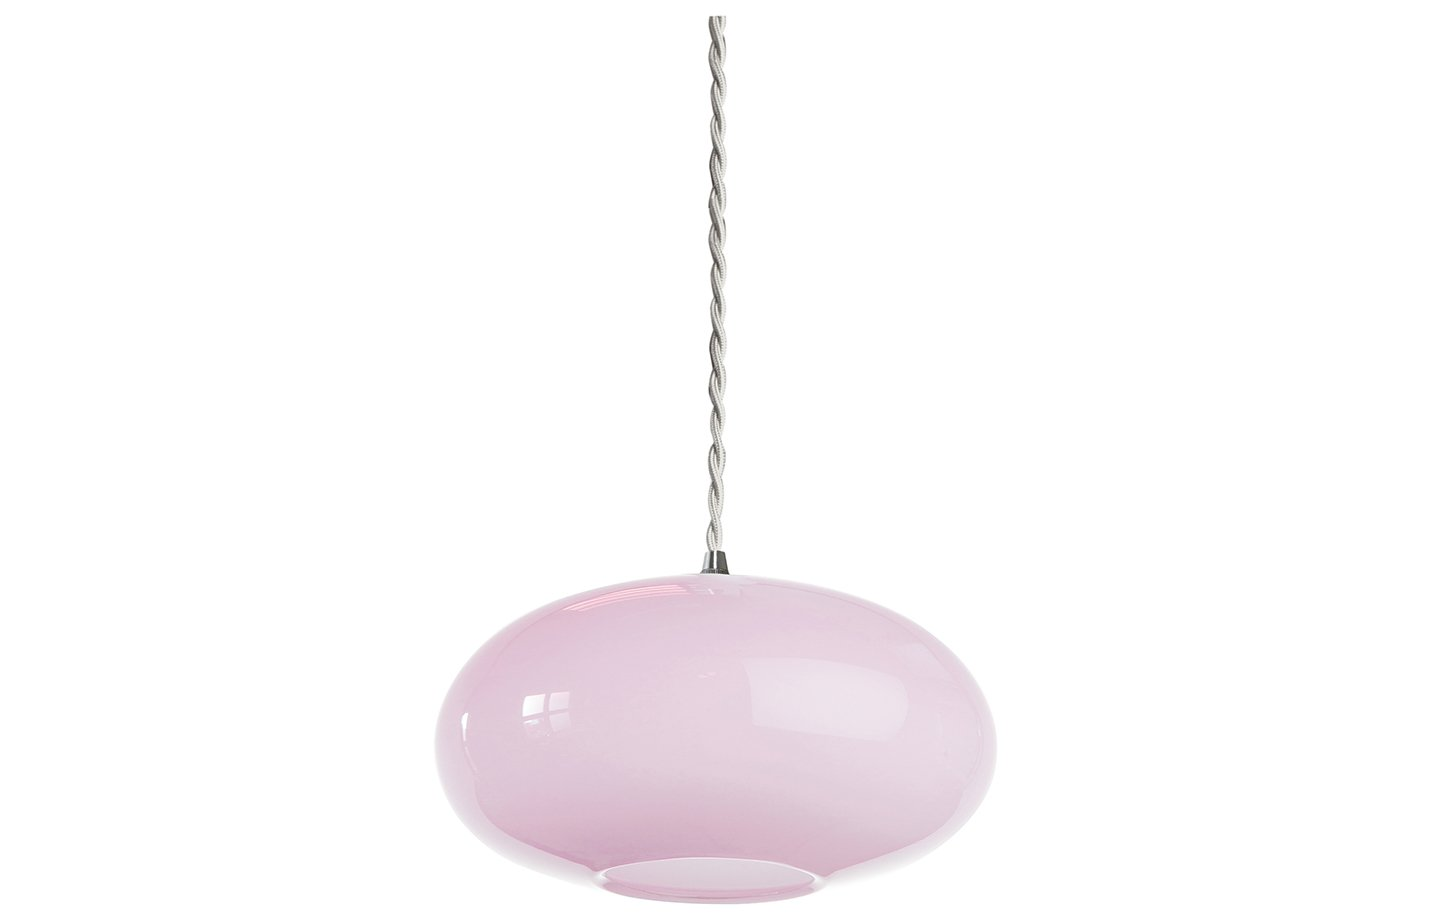 Oolong pendant lamp – Pink